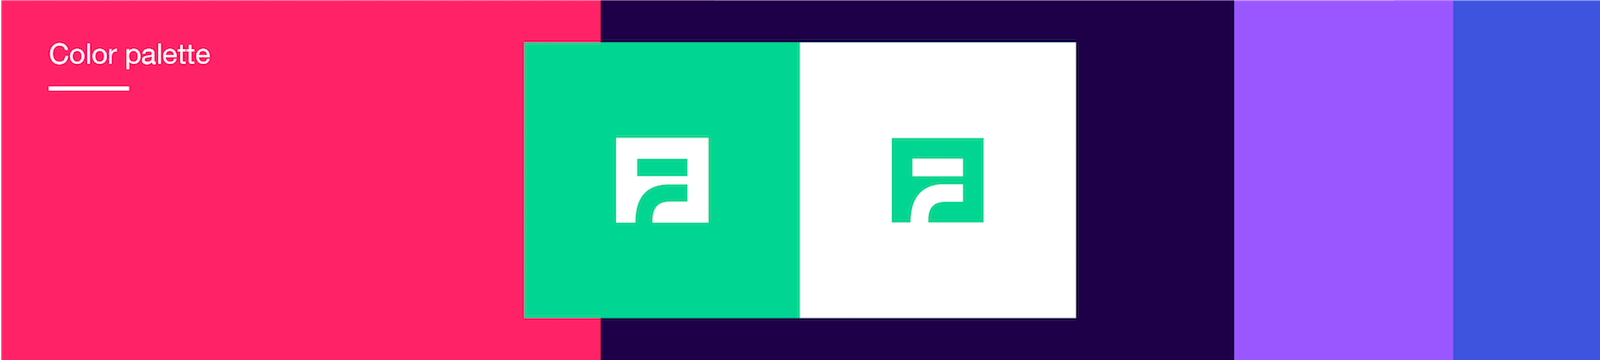 New Fyber logo color palette